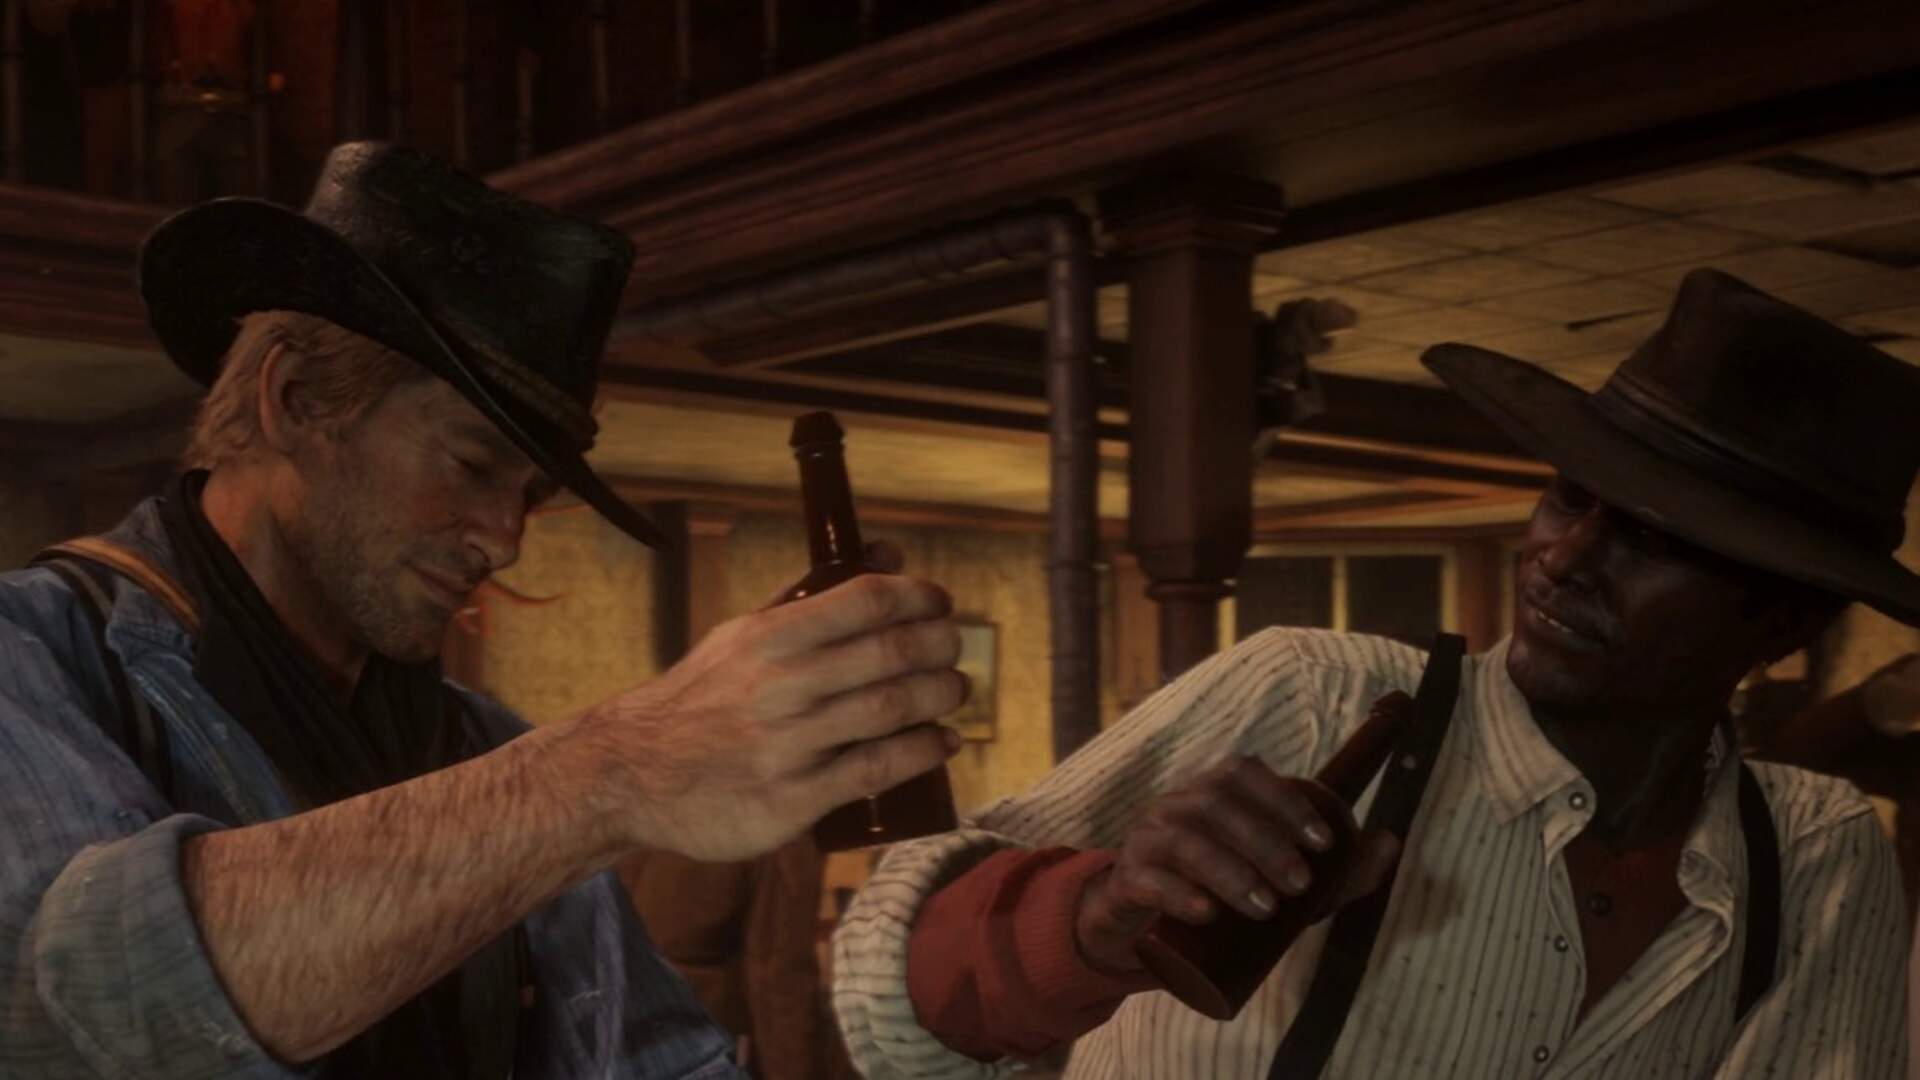 Turn Red Dead Redemption 2 Into Royal Rumble With This Mod